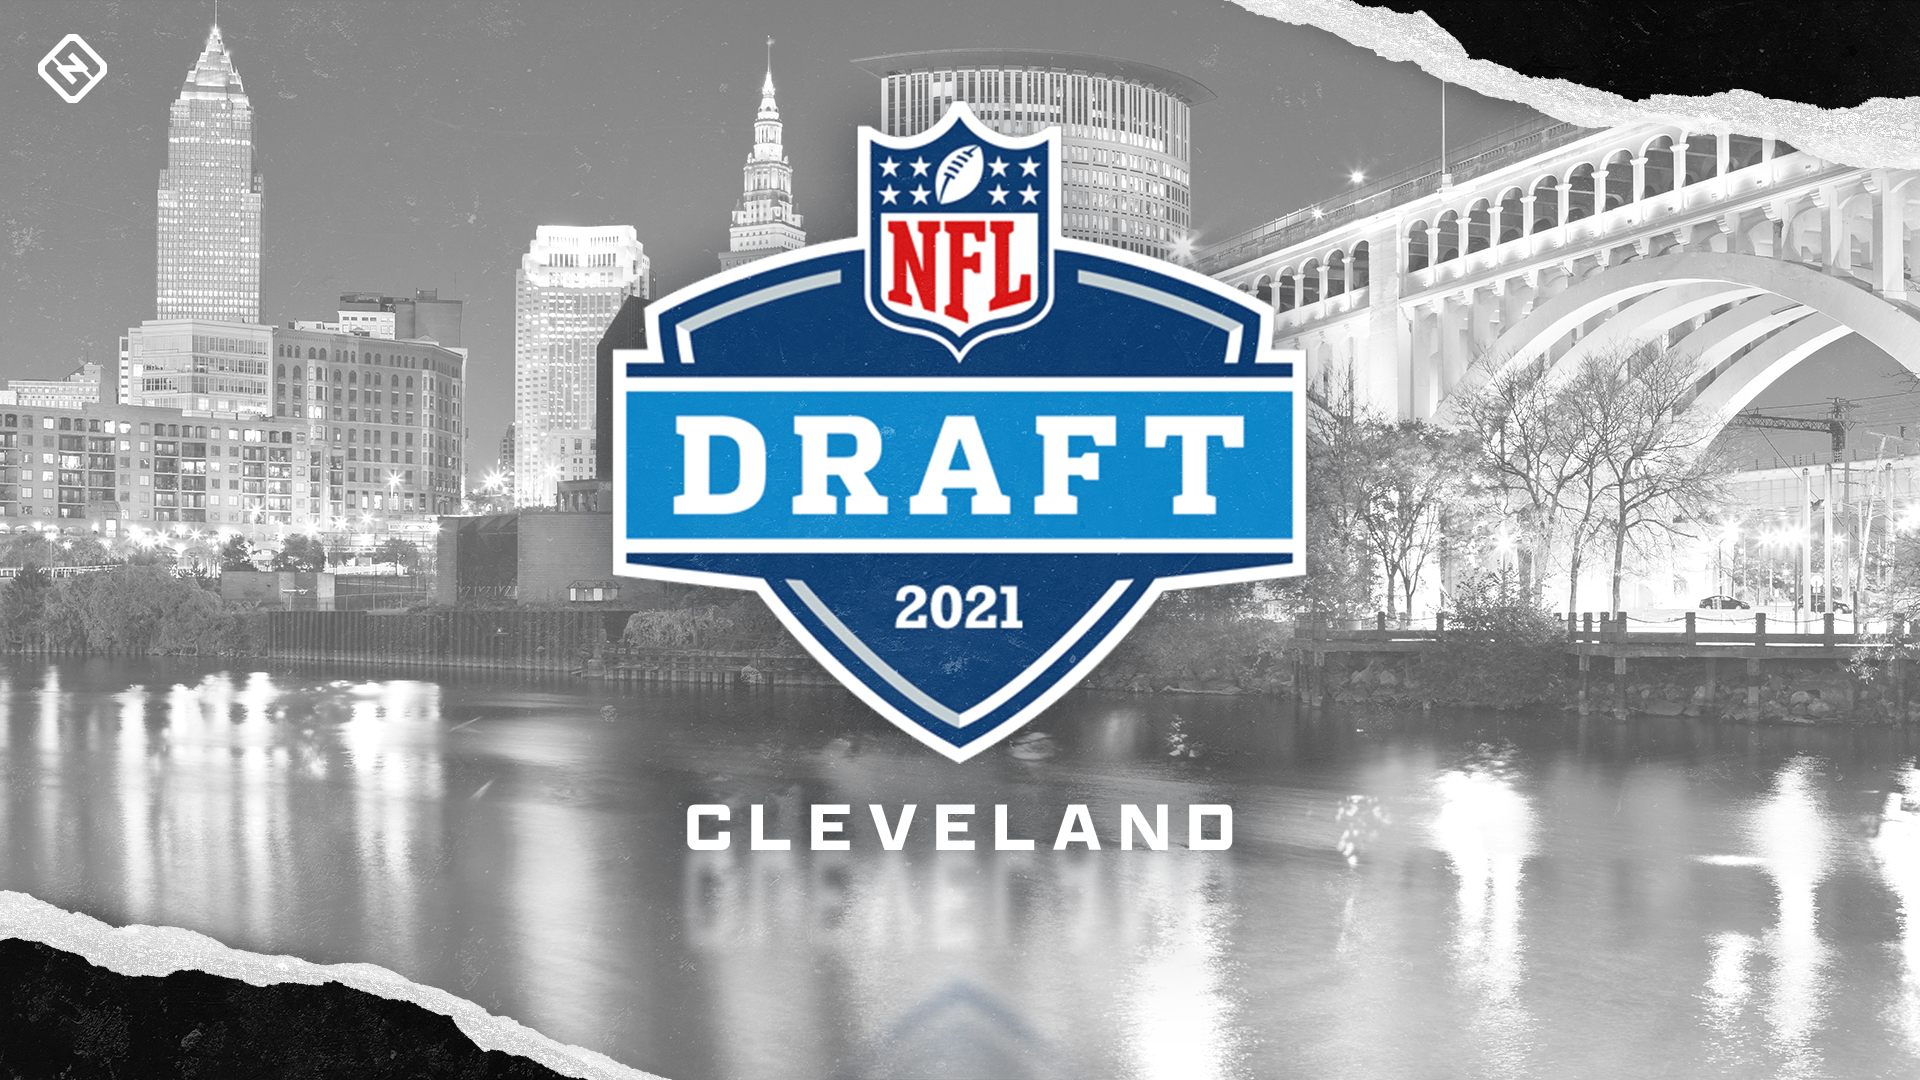 Non-NFL Draft Free Agents: Track Notable UDFA Signings After 2021 NFL Draft